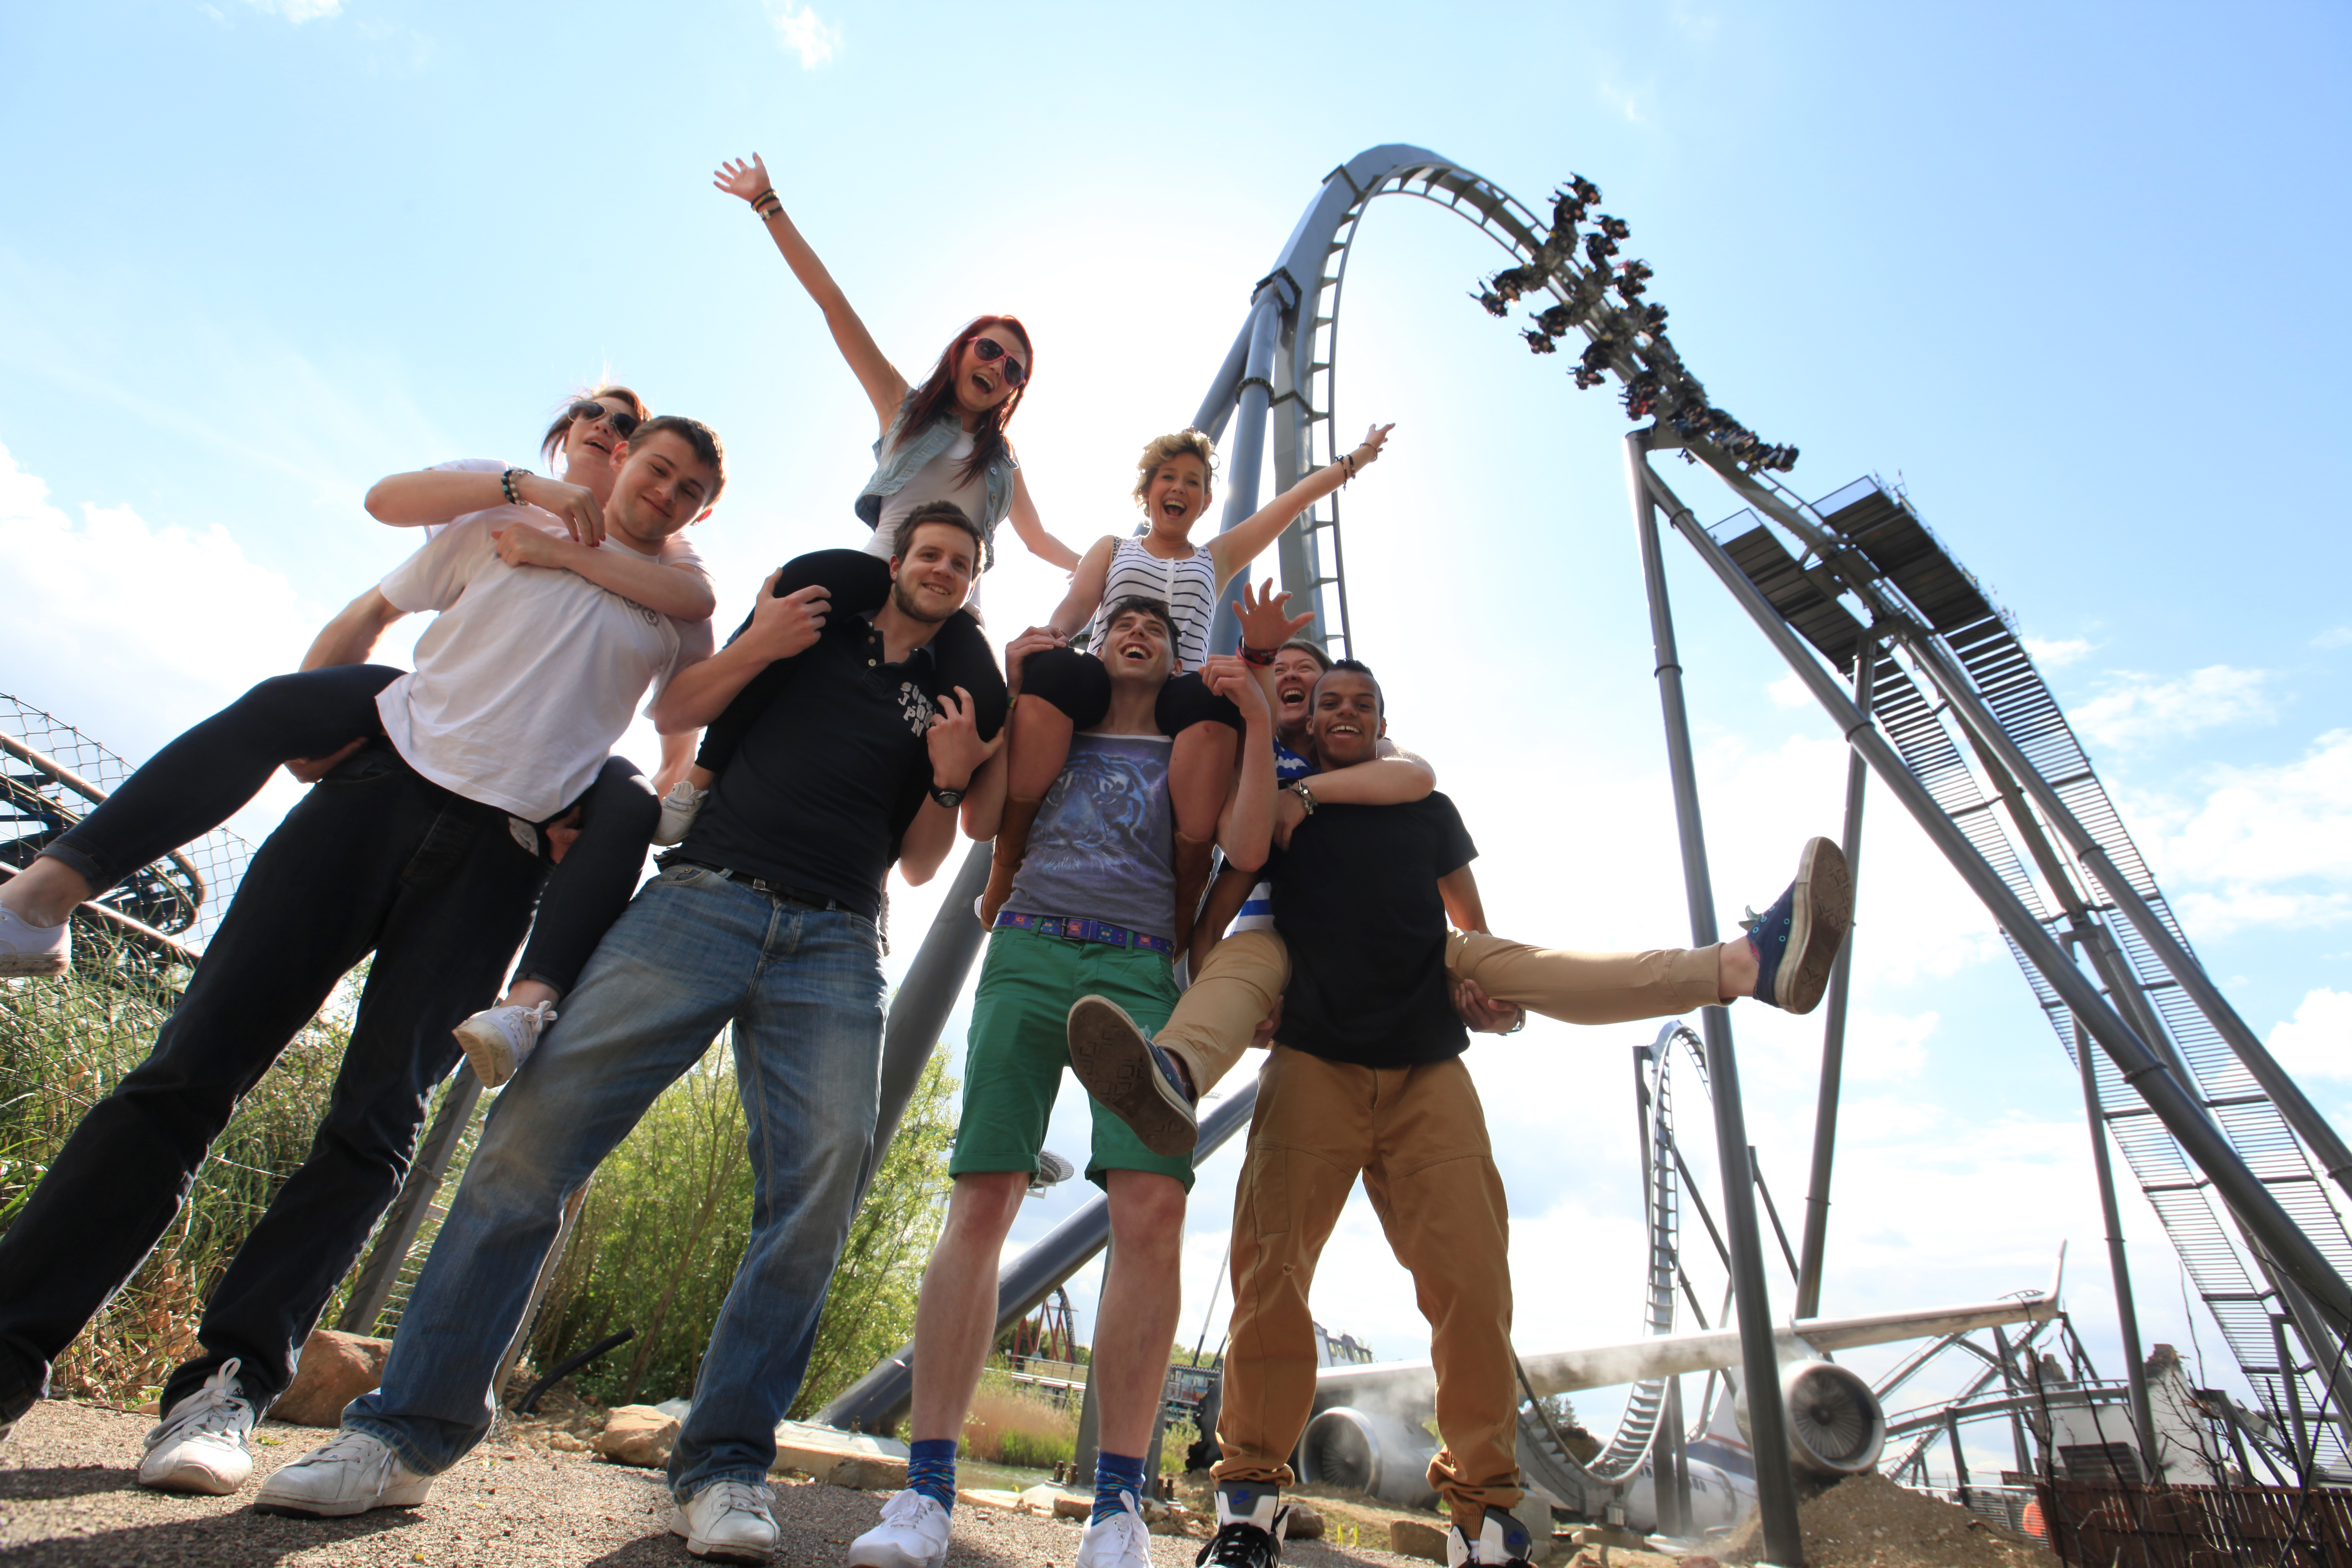 group of young people in a theme park